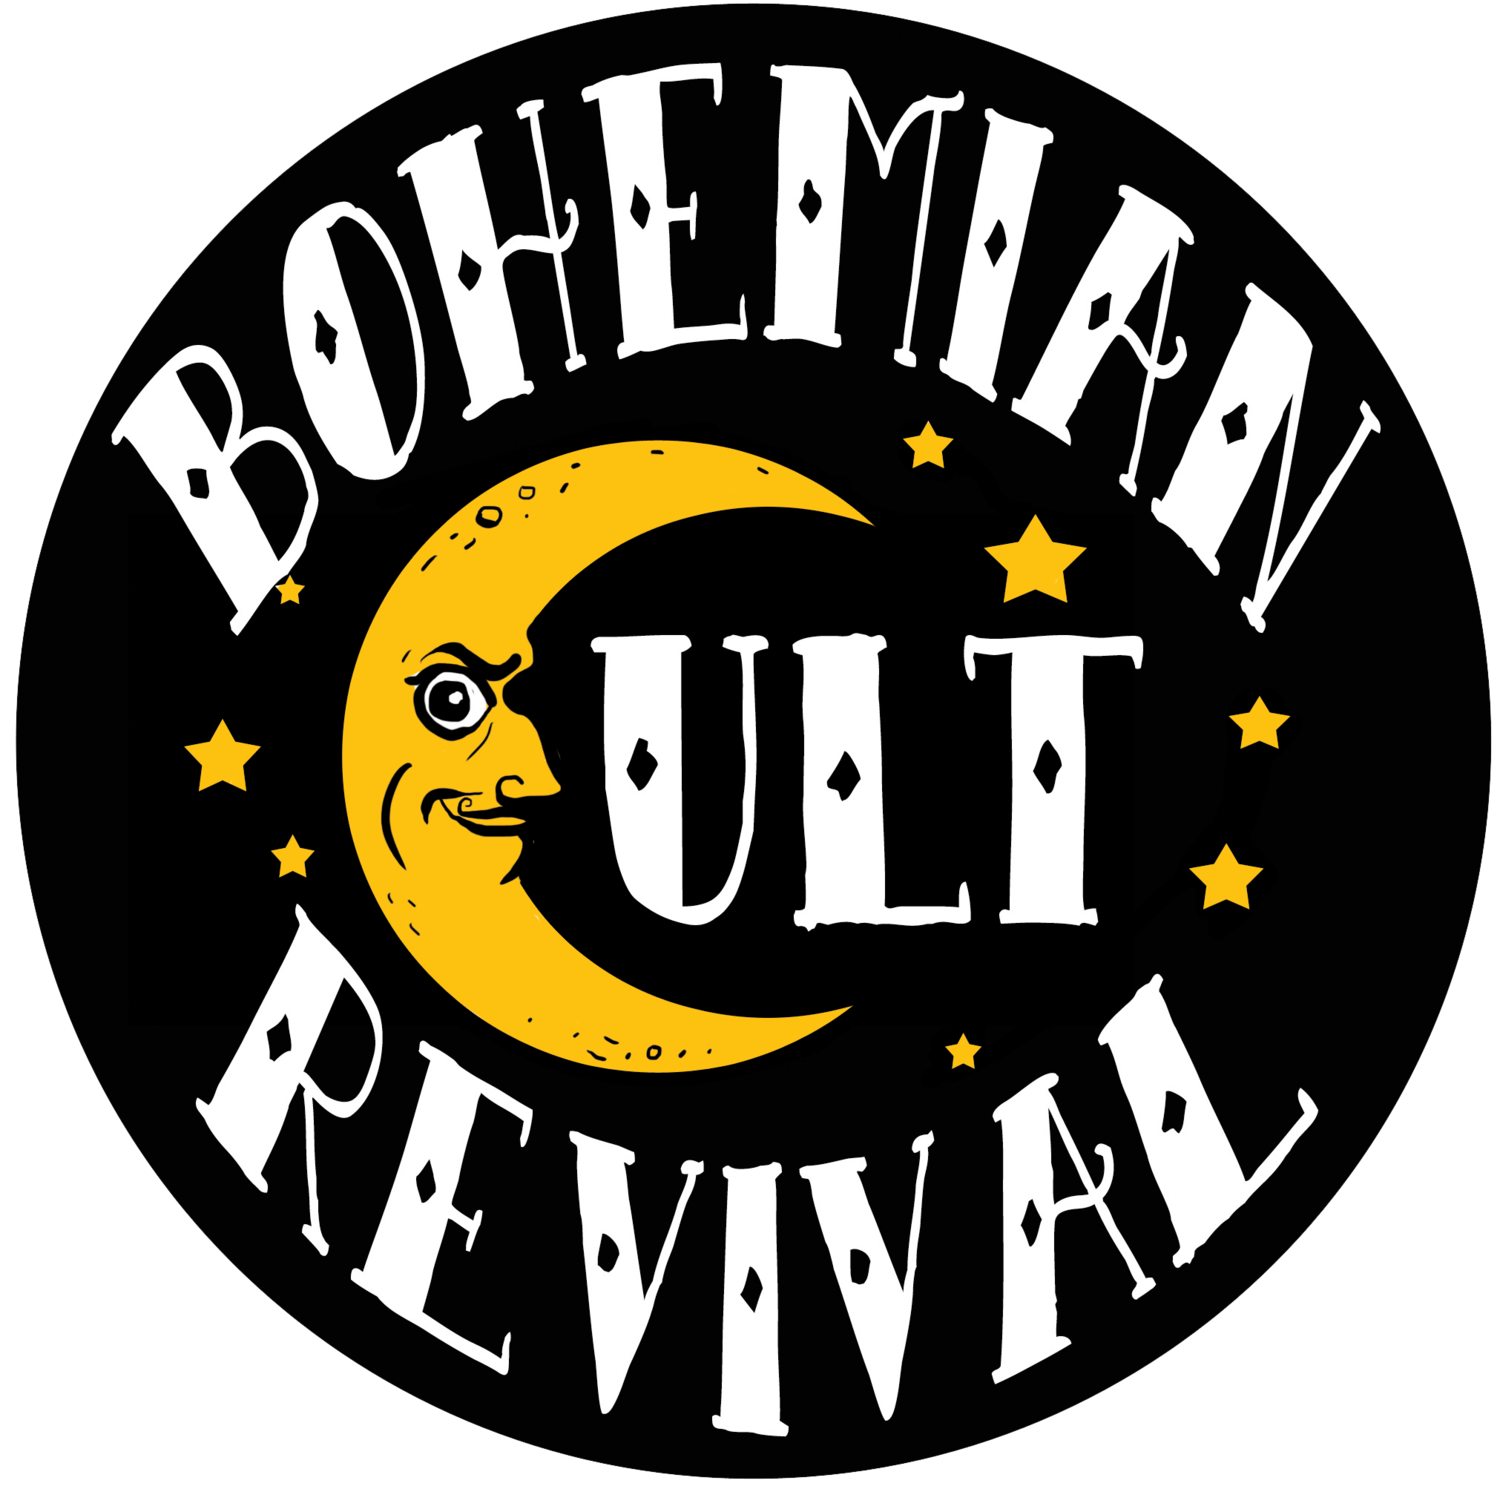 Bohemian Cult Revival